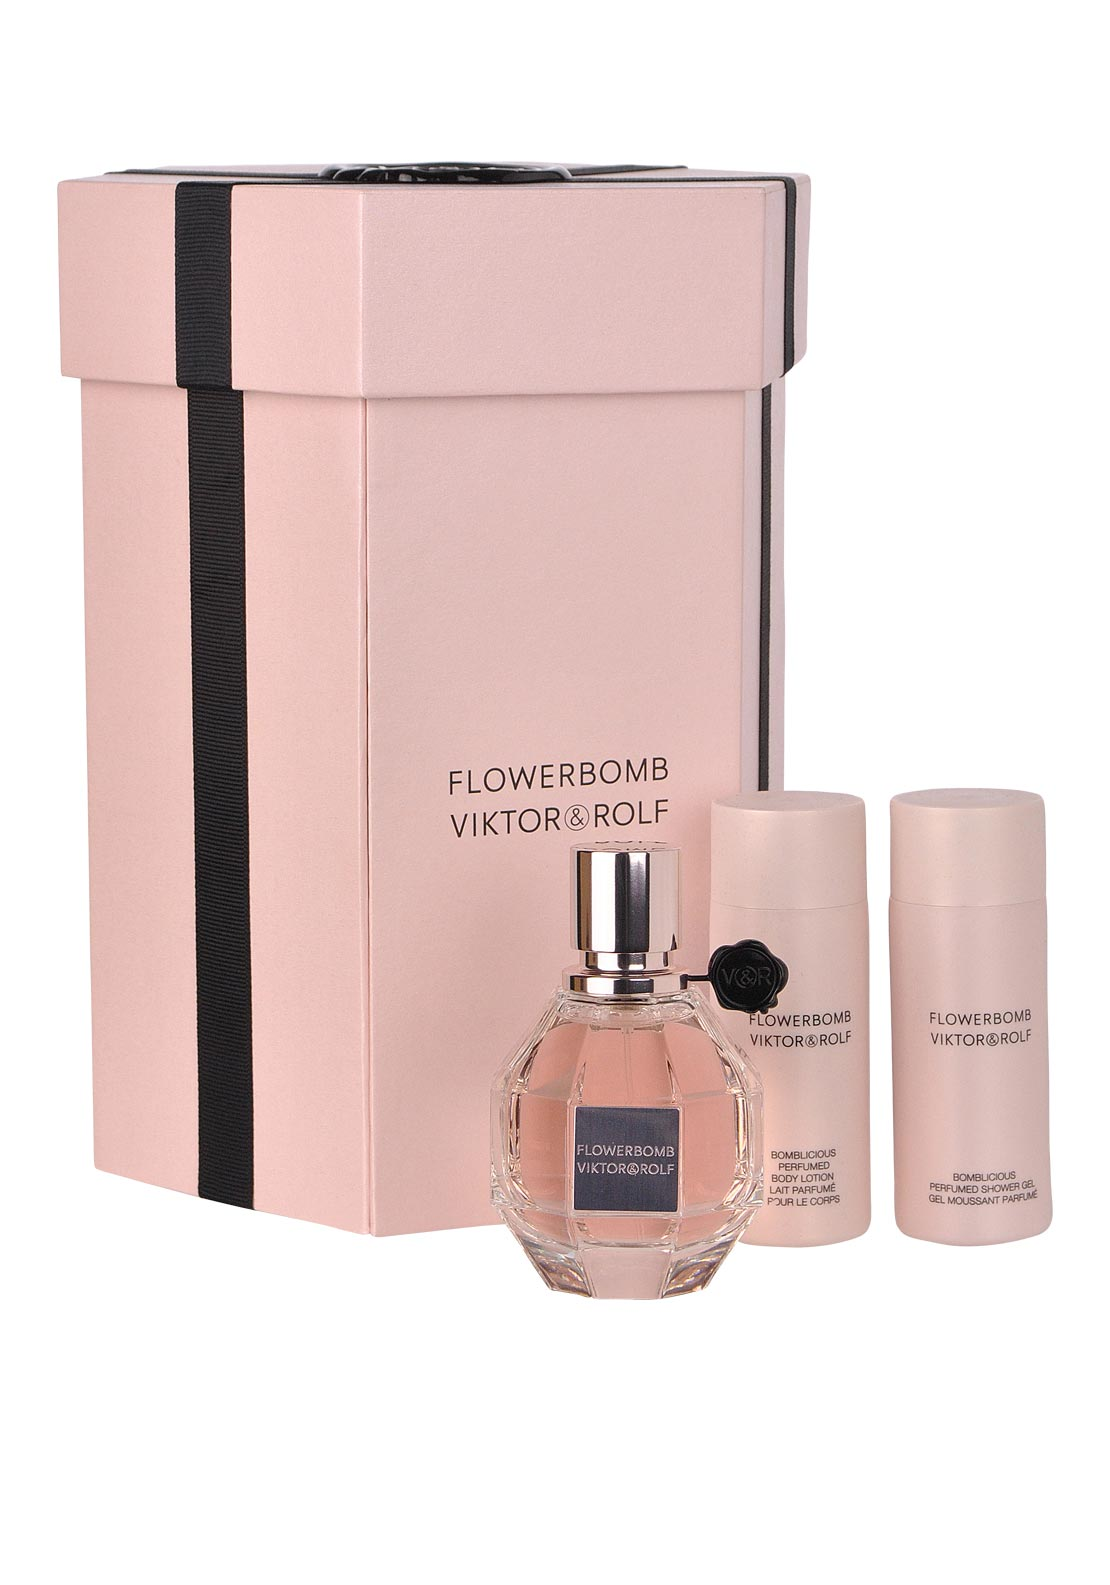 Viktor & Rolf Flowerbomb Eau De Parfum Gift Set for Her, 50ml